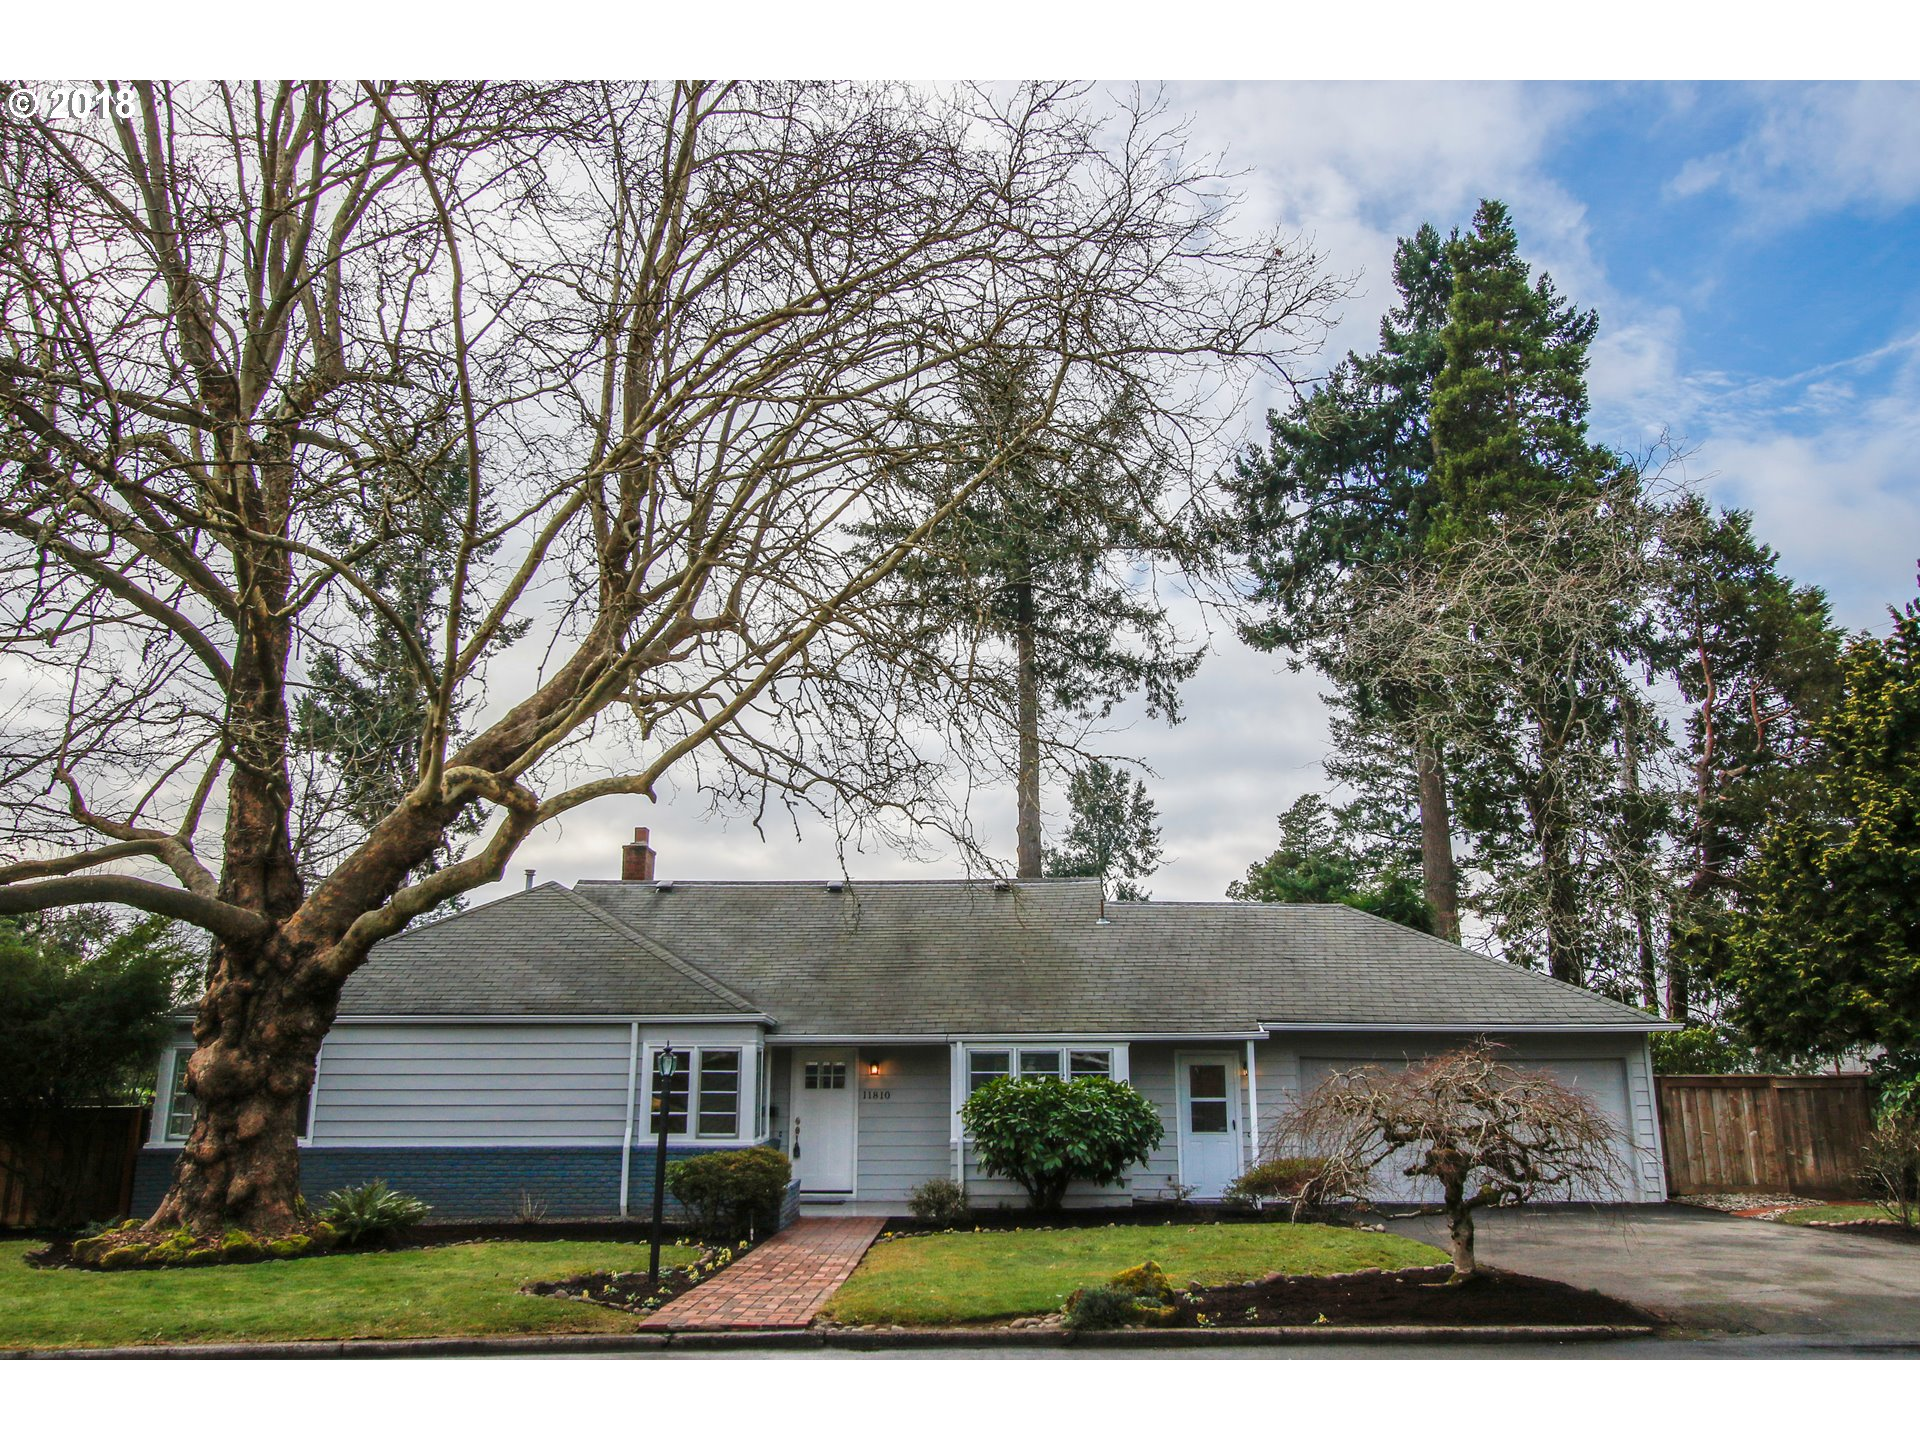 1989 sq. ft 3 bedrooms 2 bathrooms  House For Sale,Portland, OR